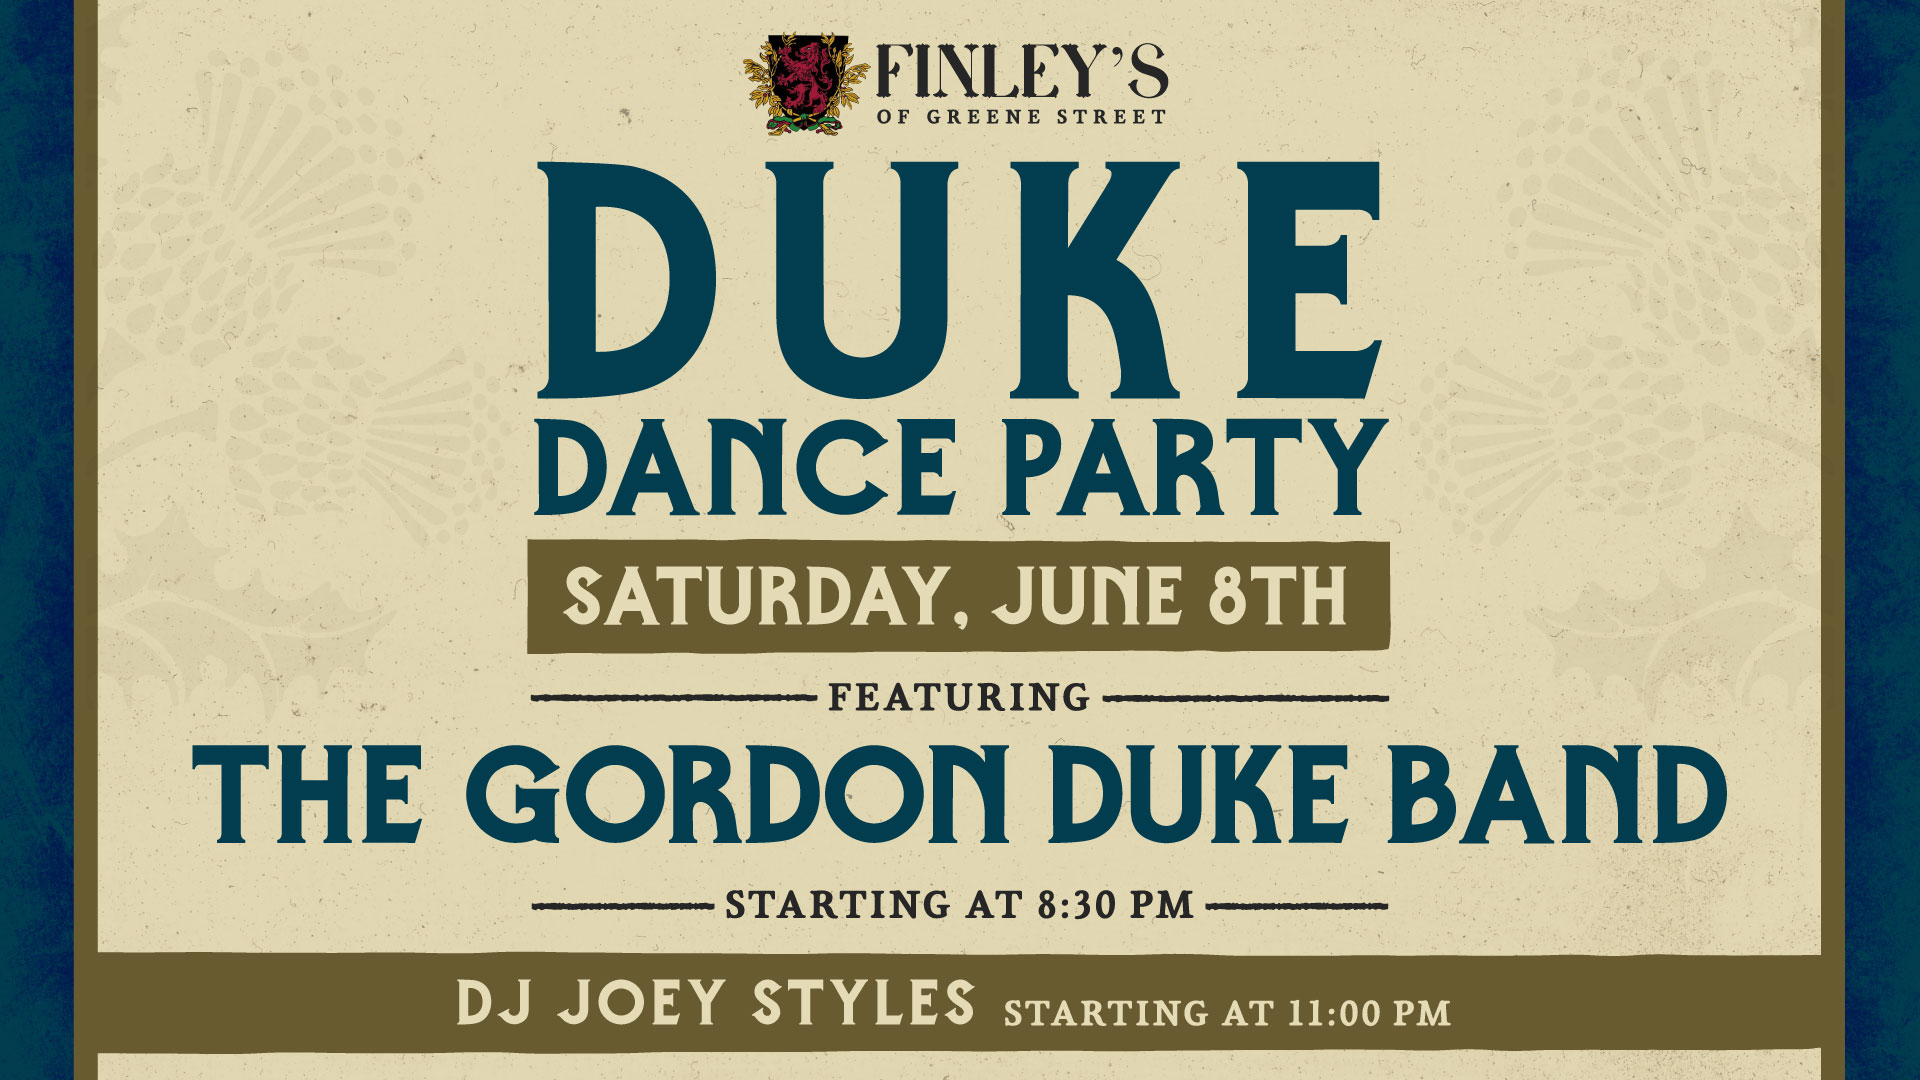 Flyer for Duke Dance Party with the Gordon Duke Band on June 8th at 8:30pm